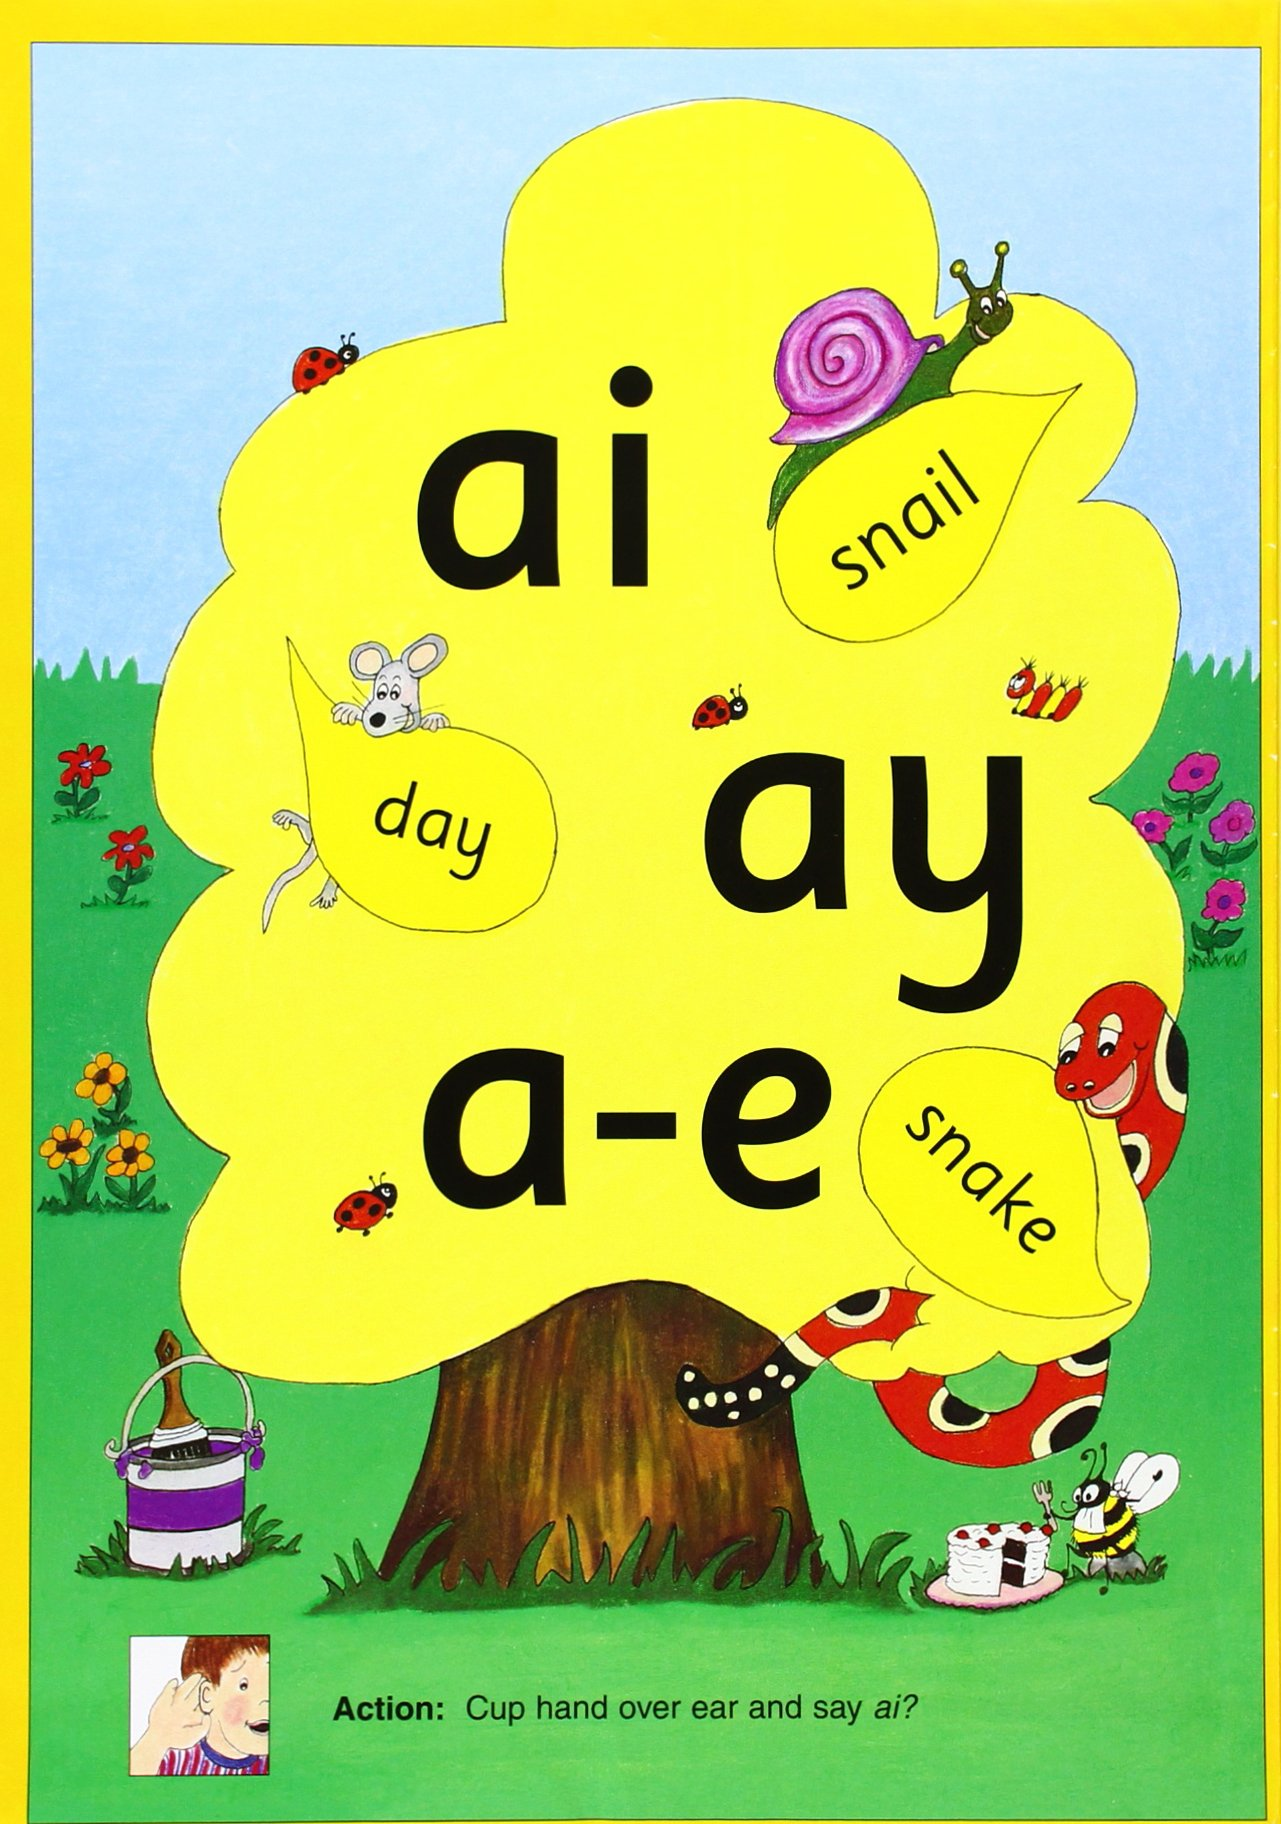 Jolly Phonics Alternative Spelling & Alphabet Poster (in Print Letters)